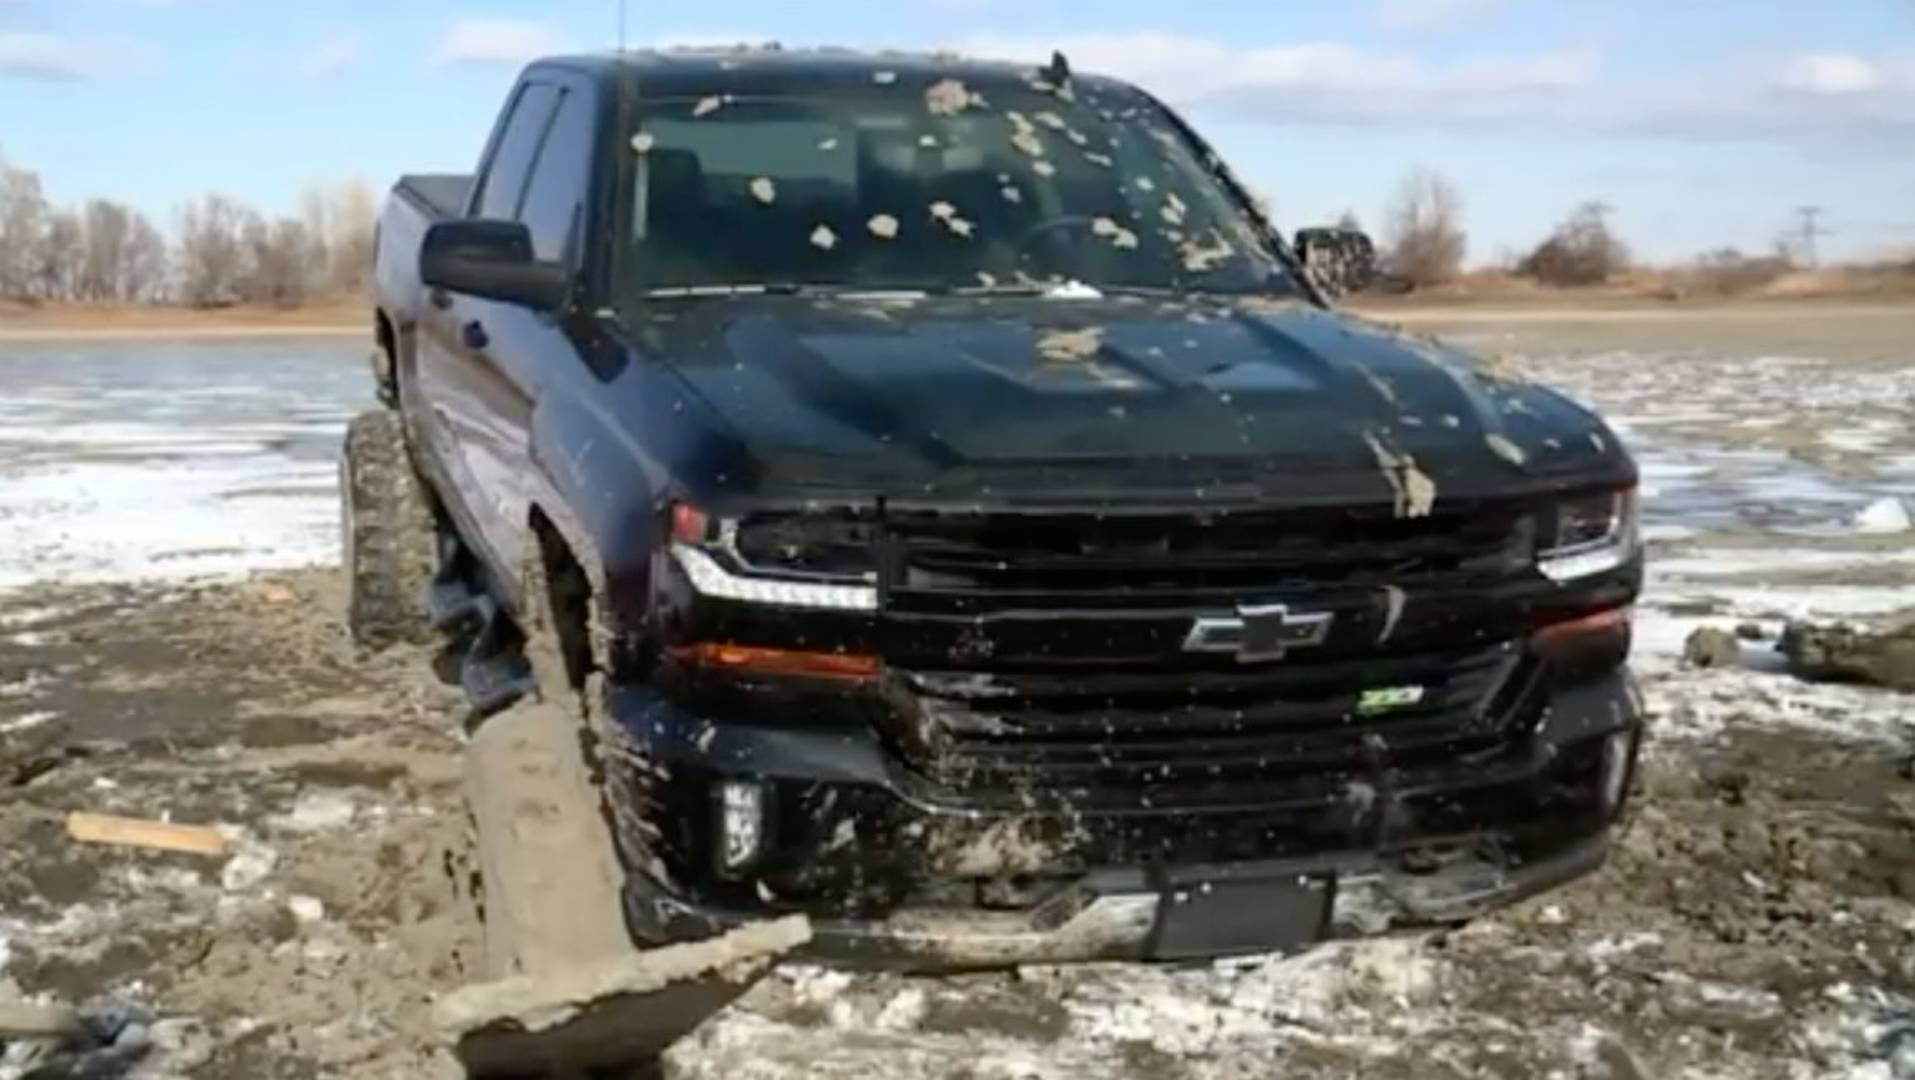 Chevy Silverado And Rescuing Backhoe Get Stuck In Frozen Lake